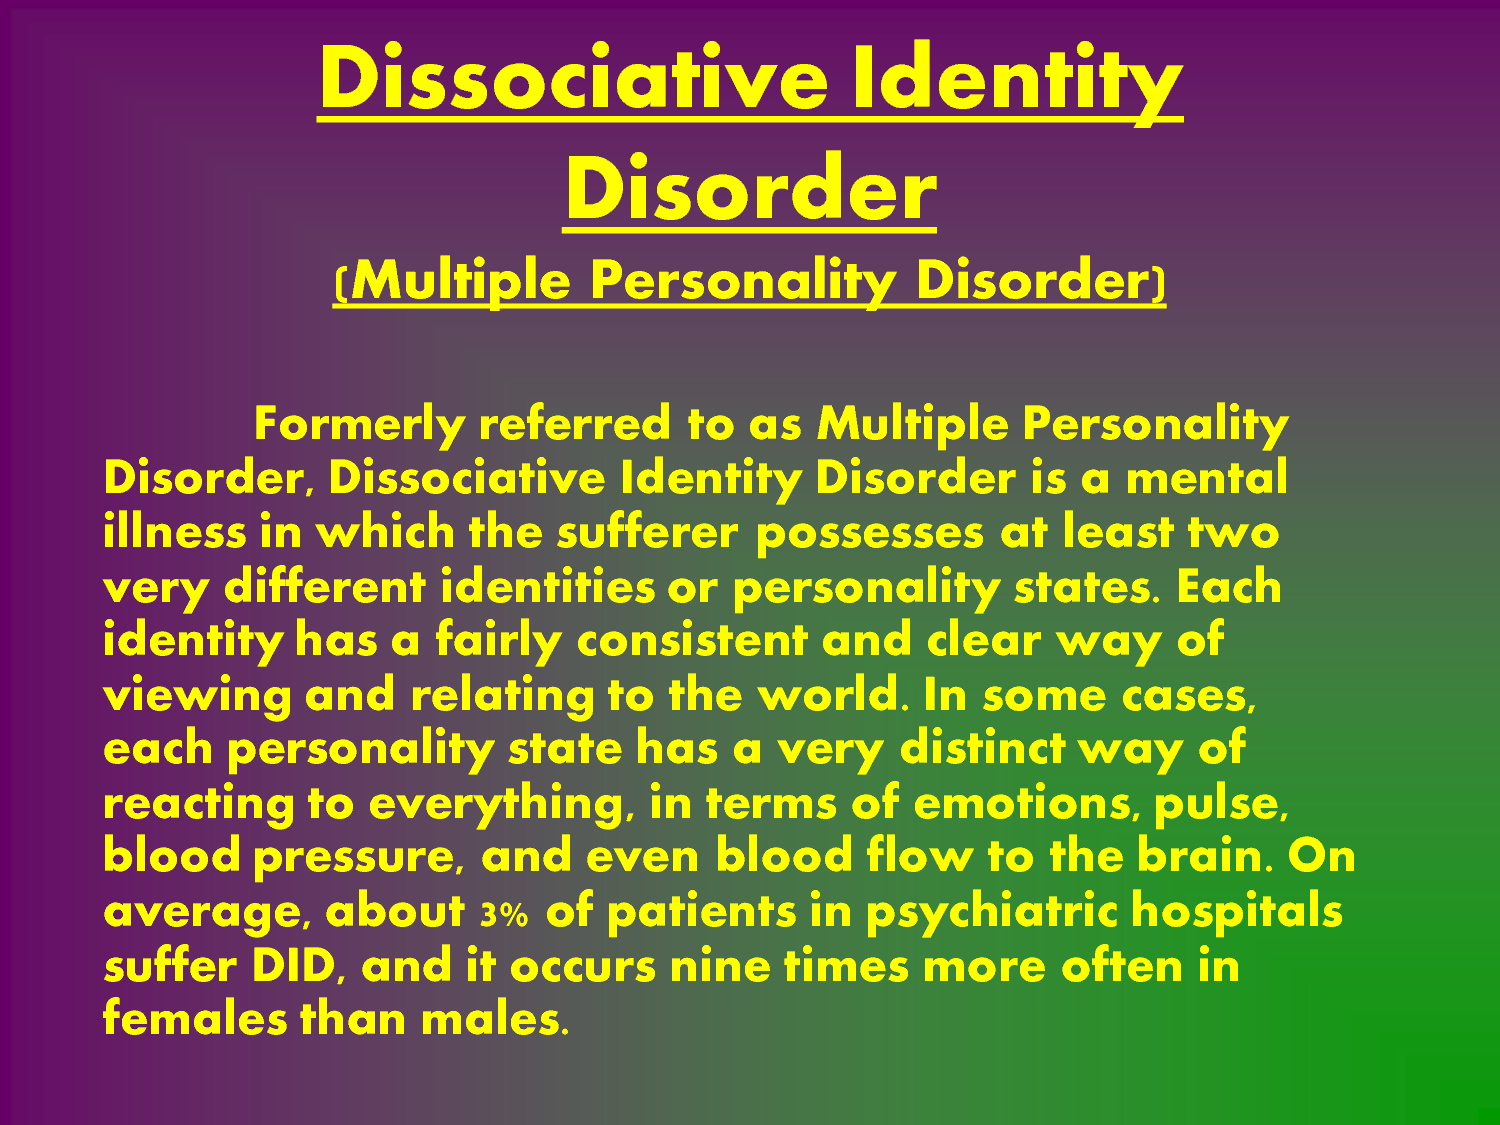 dating dissociative identity disorder